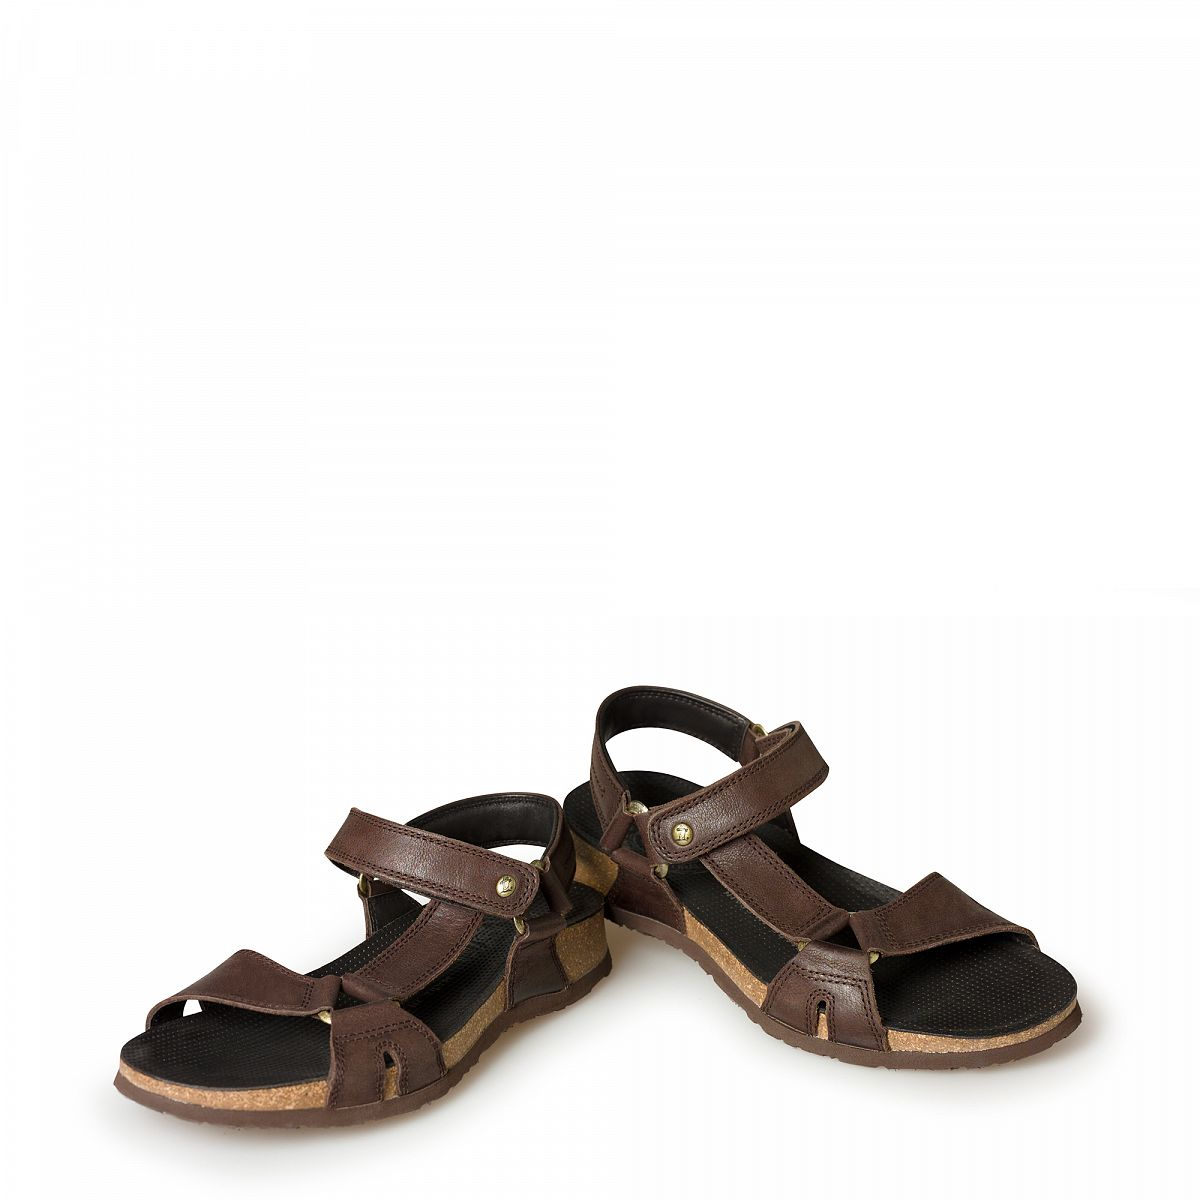 Panama Shoes Online